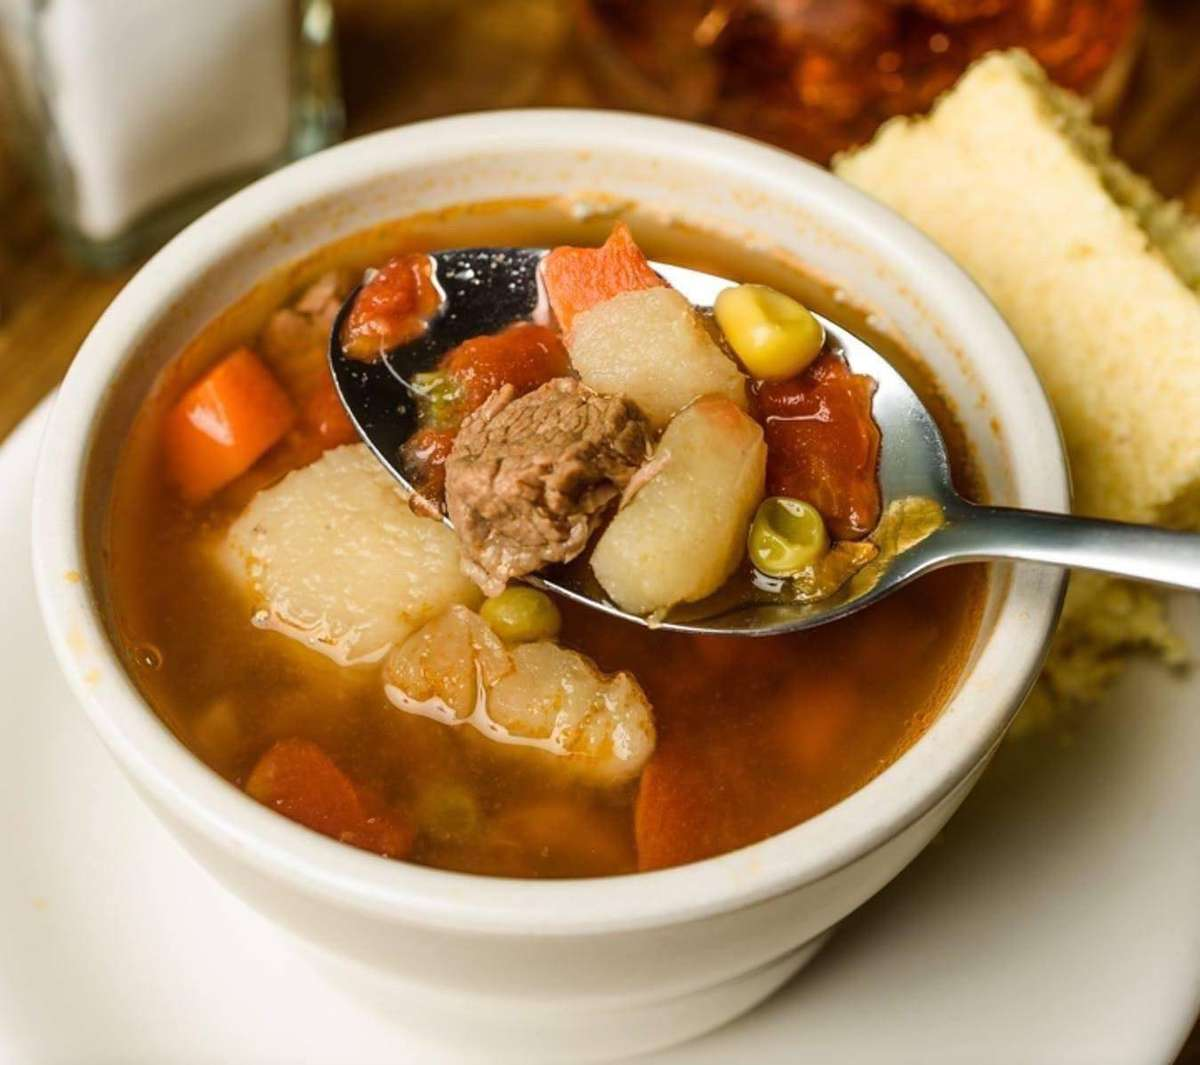 Tuesday: Vegetable Beef Soup